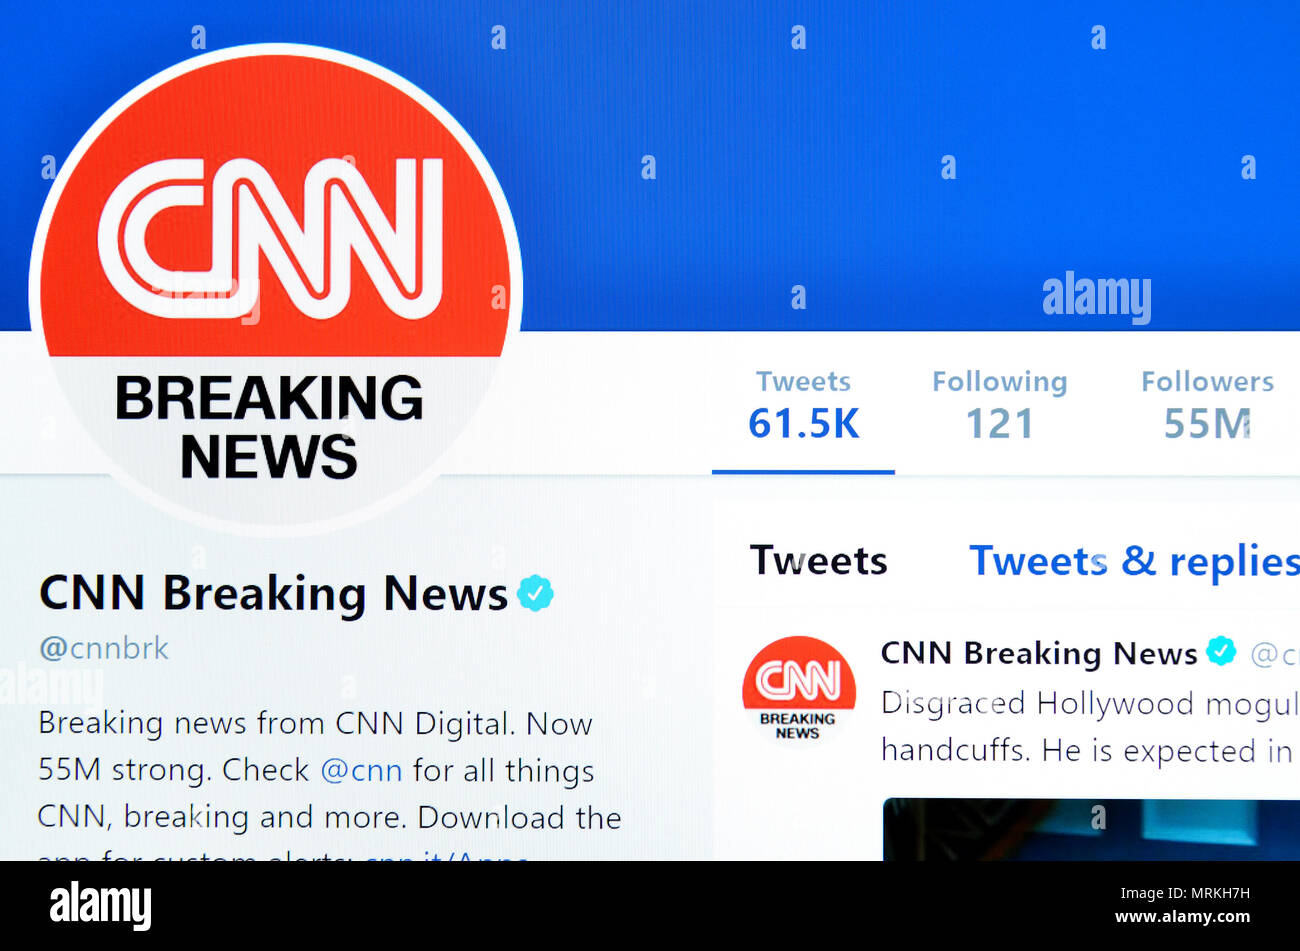 CNN Breaking News Twitter page (2018) Photo Stock